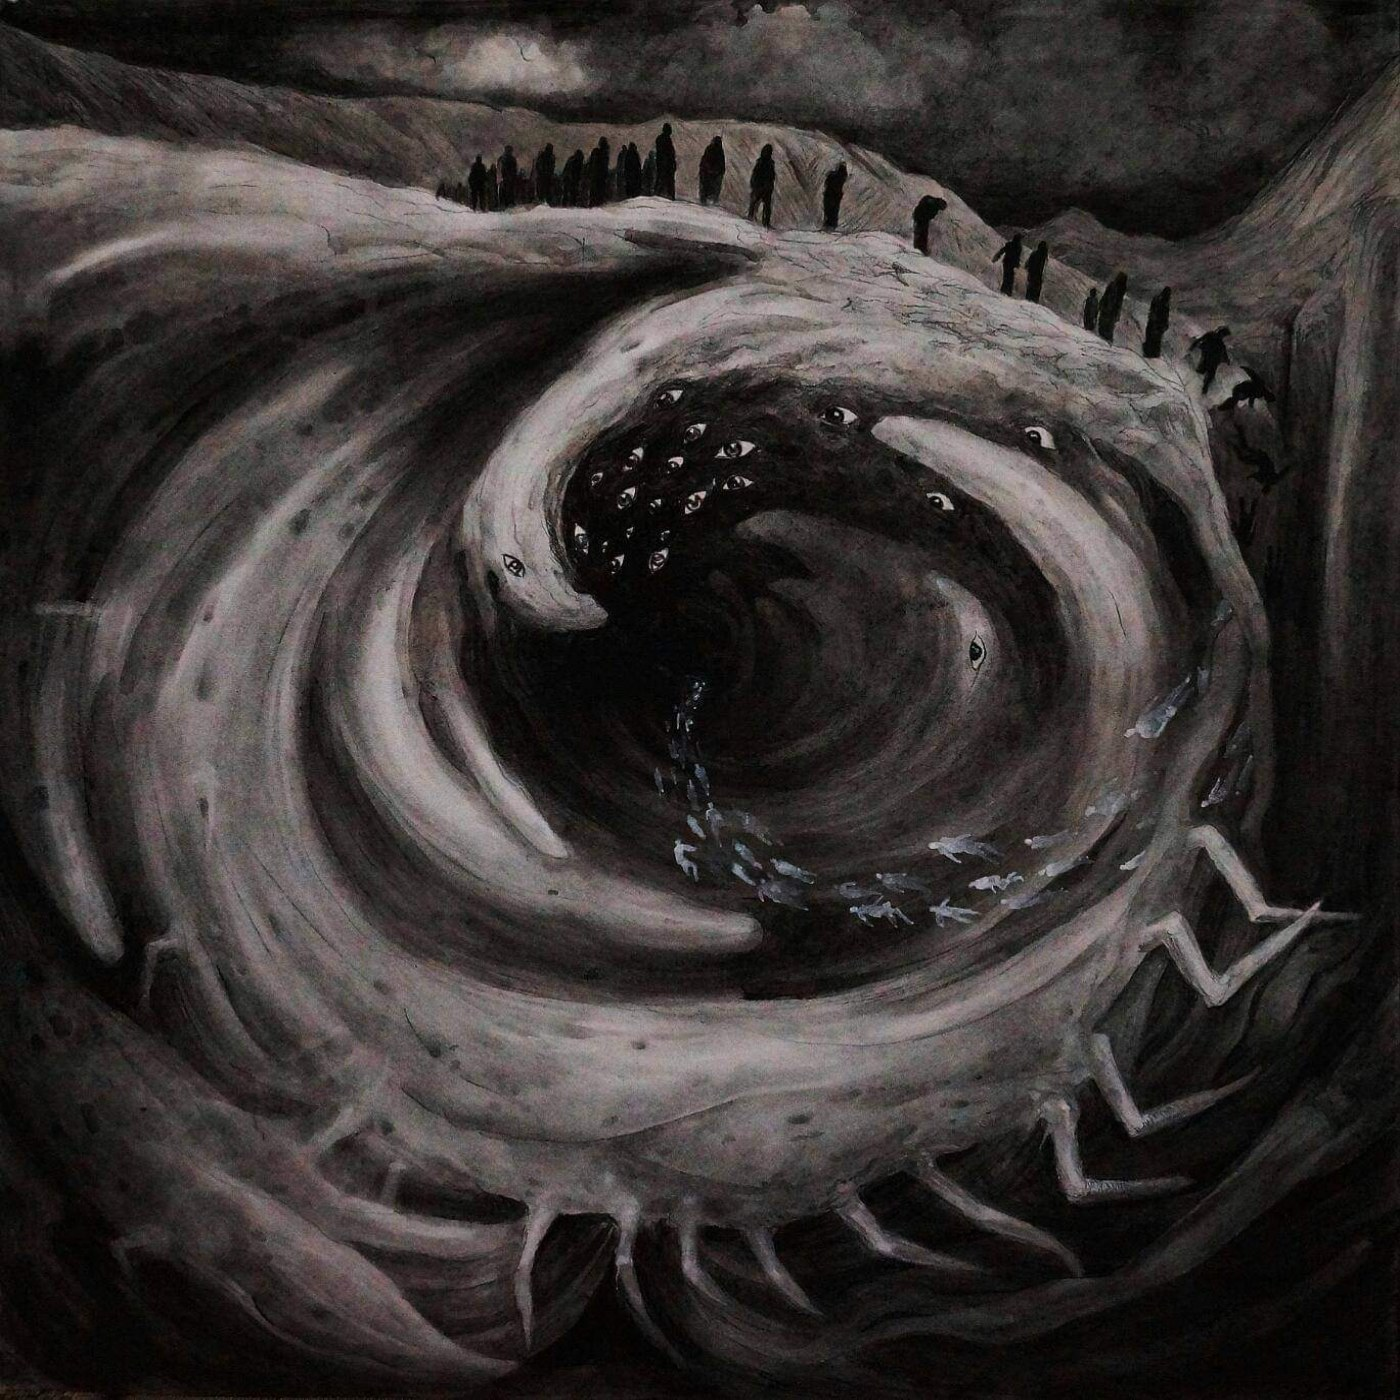 Reviews for Burial Hordes - Θανατος αιωνιος (The Termination Thesis)